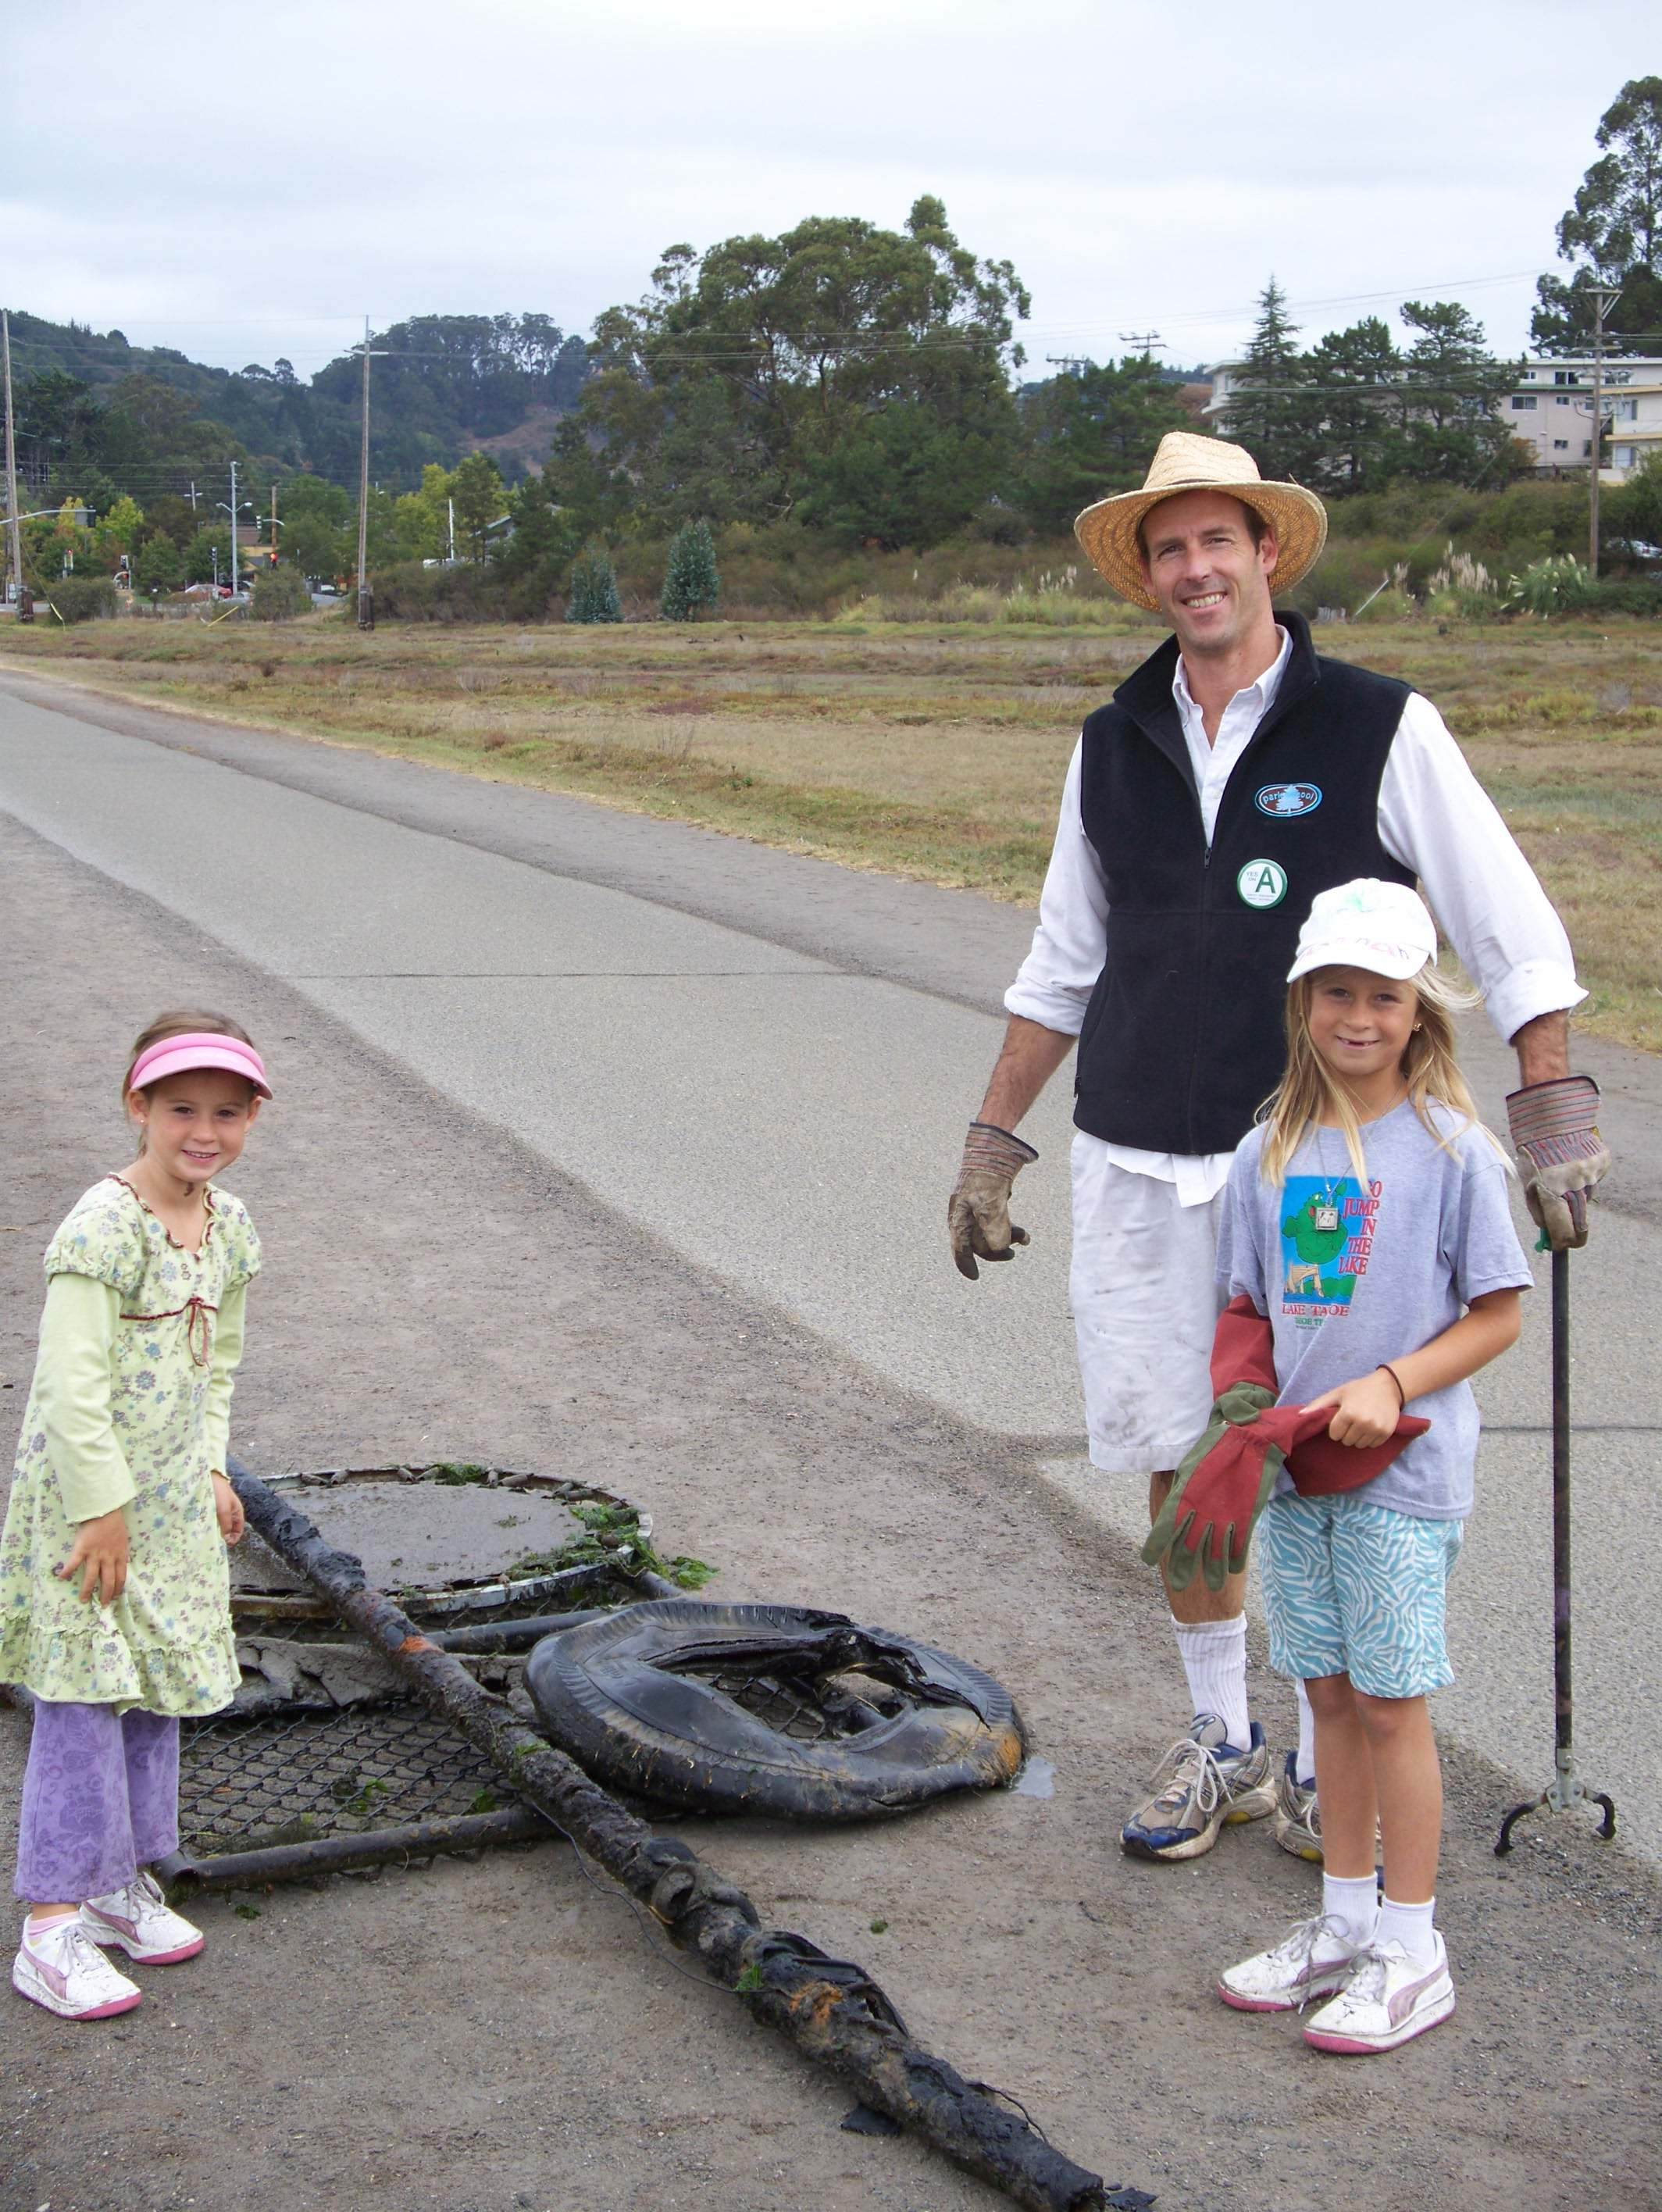 Coastal Cleanup Day 08 Family with trampoline, tire, etc.